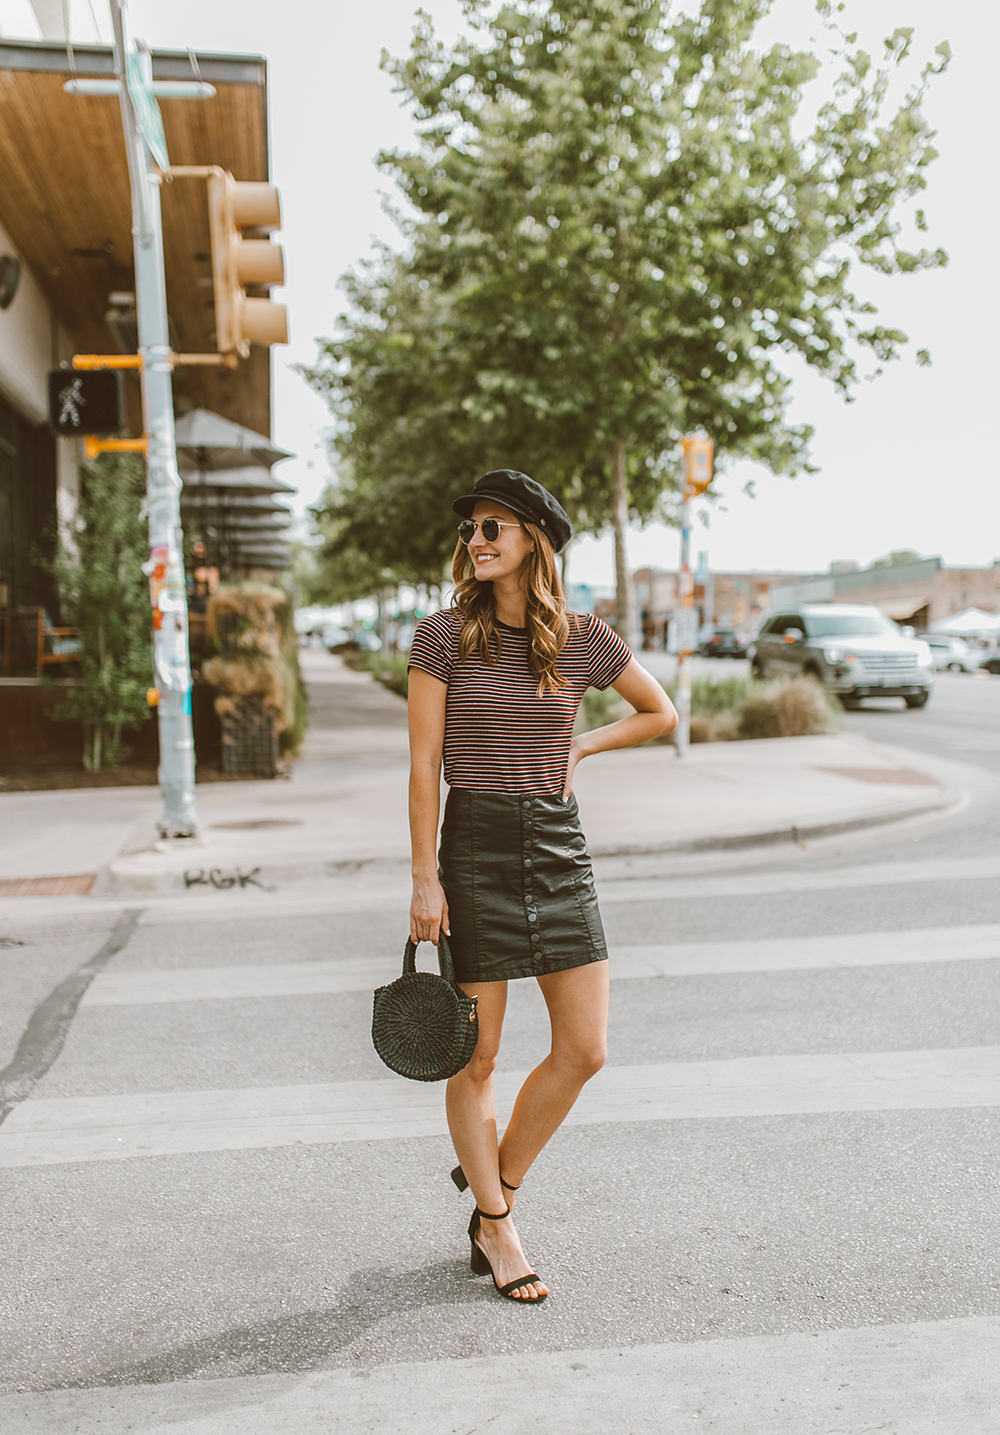 livvyland-blog-olivia-watson-austin-texas-fashion-style-blogger-brixton-fishermans-baker-boy-hat-urban-outfitters-outfit-idea-8